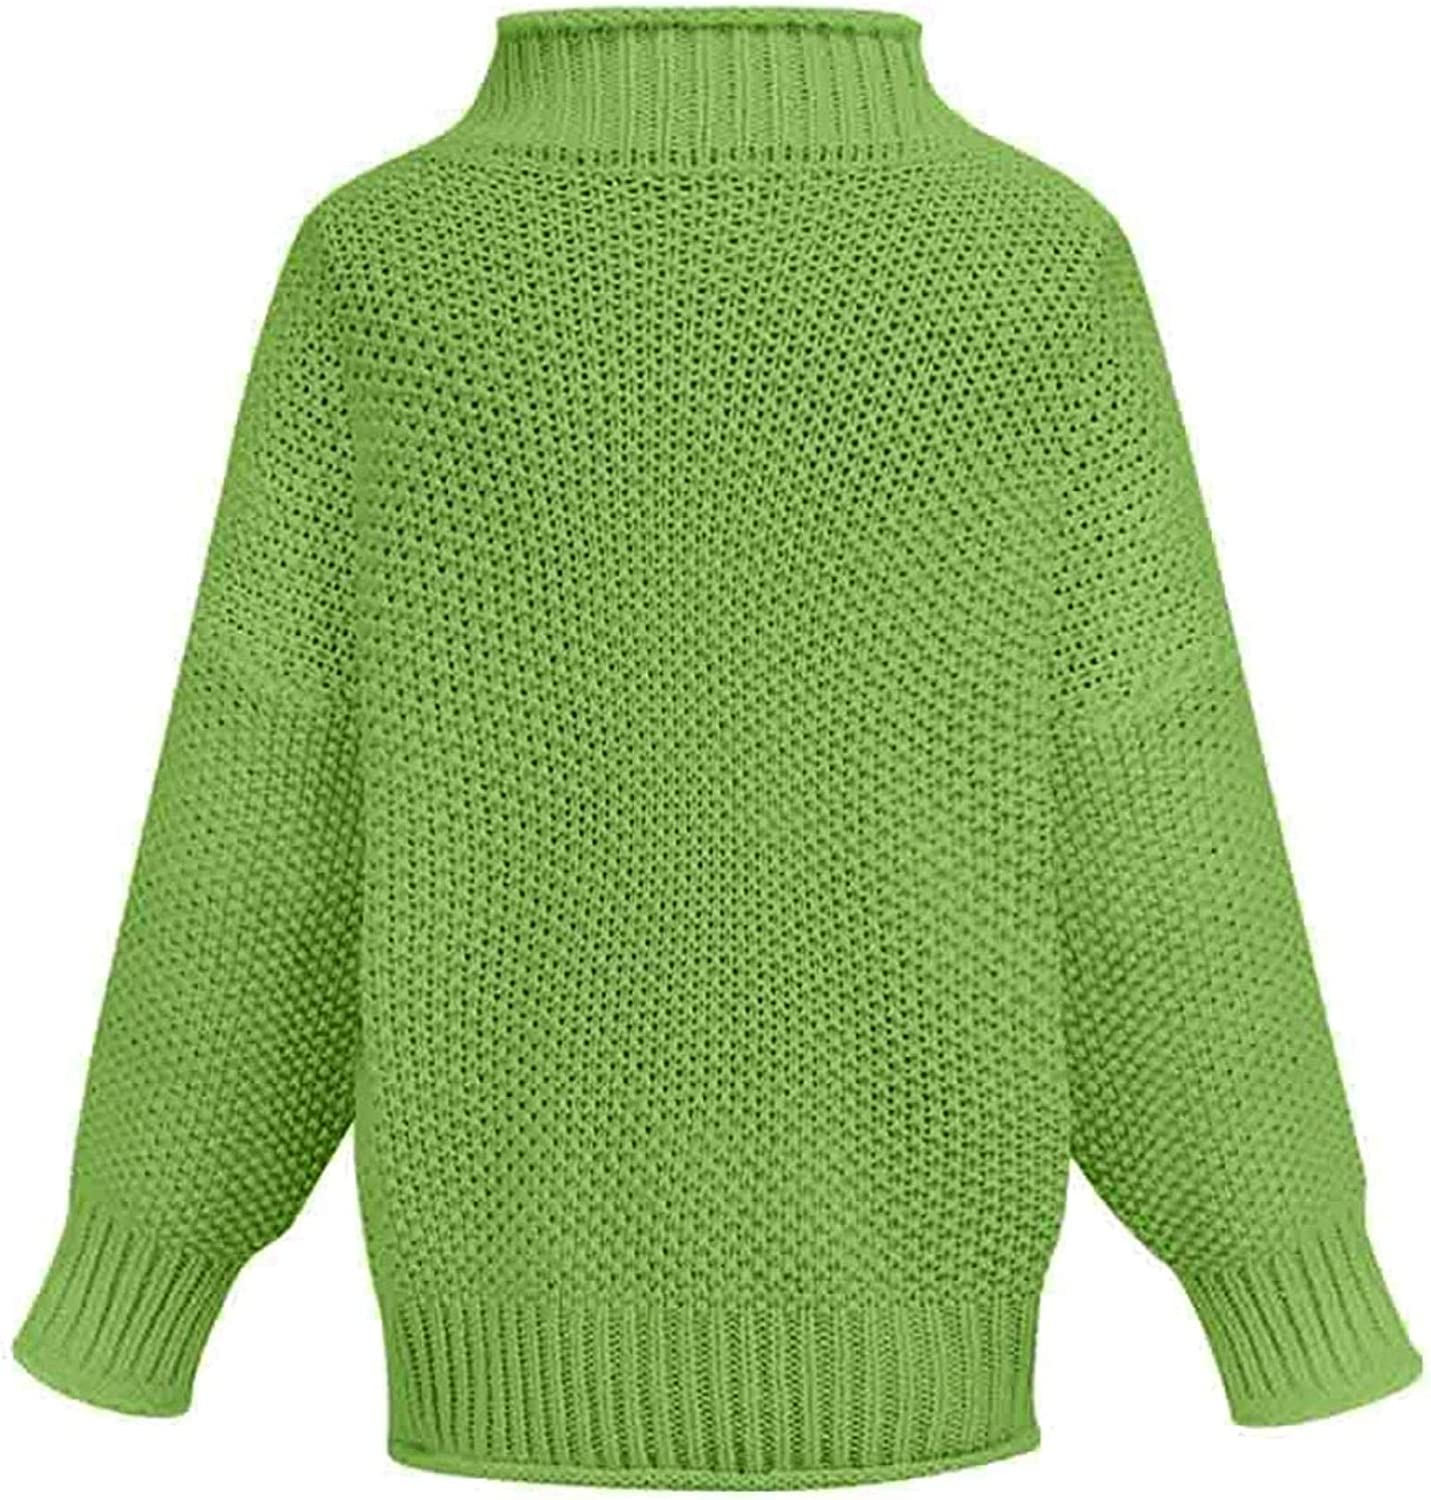 VEFSU Women's Turtleneck Cropped Sweater Washable Silk Mockneck Pullover Classic-Fit Knit Tops Green